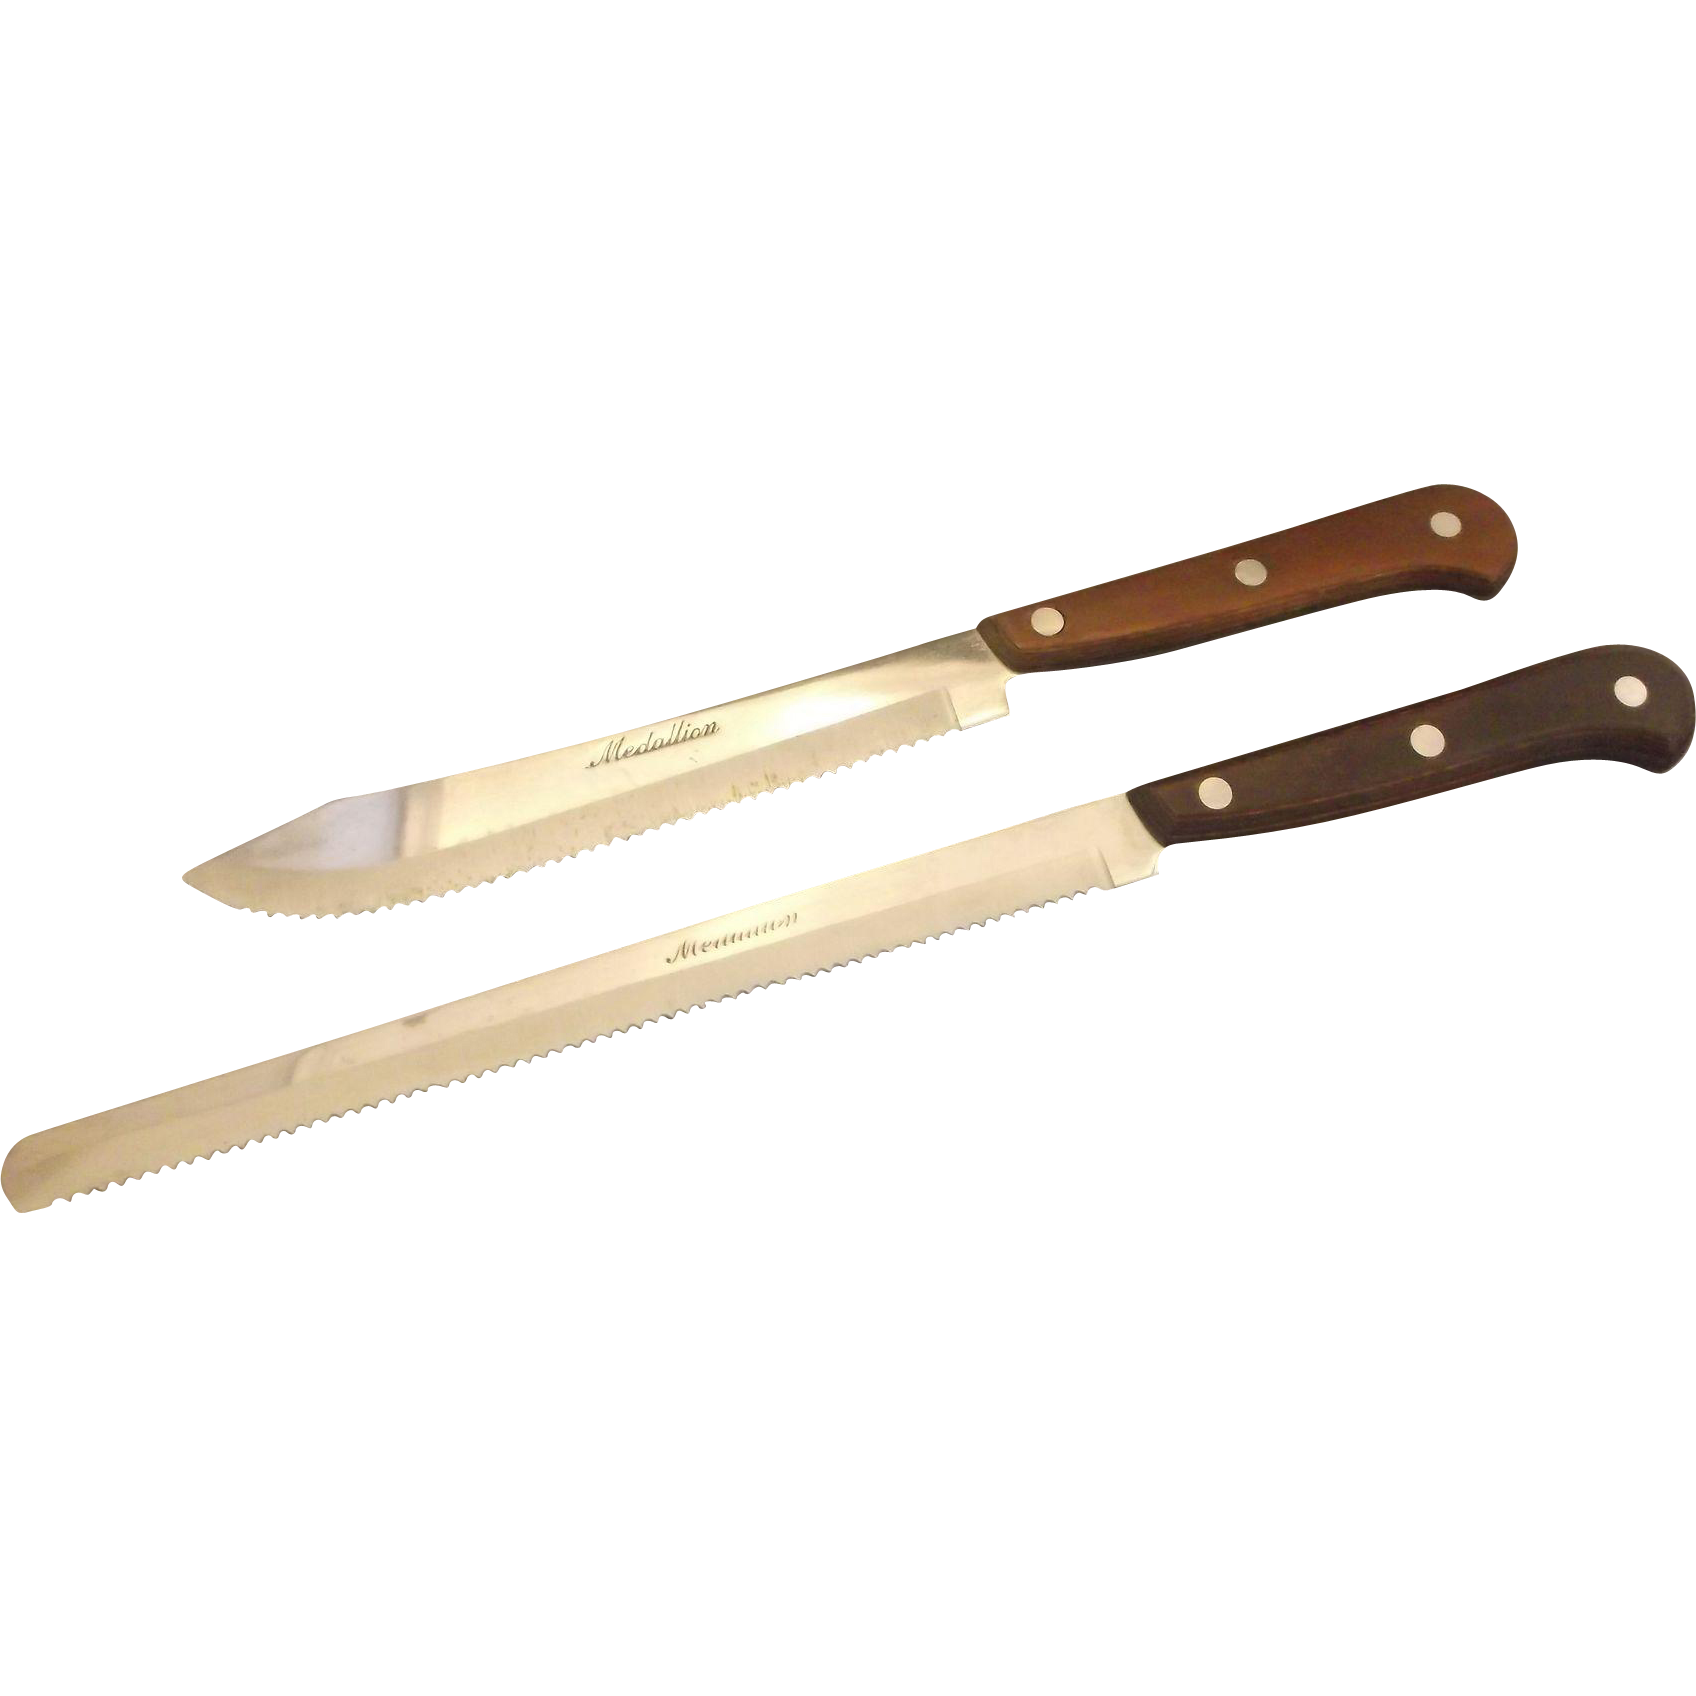 Medallion Stainless Steel Japan Knives Pair Bread Carving Serrated Blades Wood Handles Full Tang